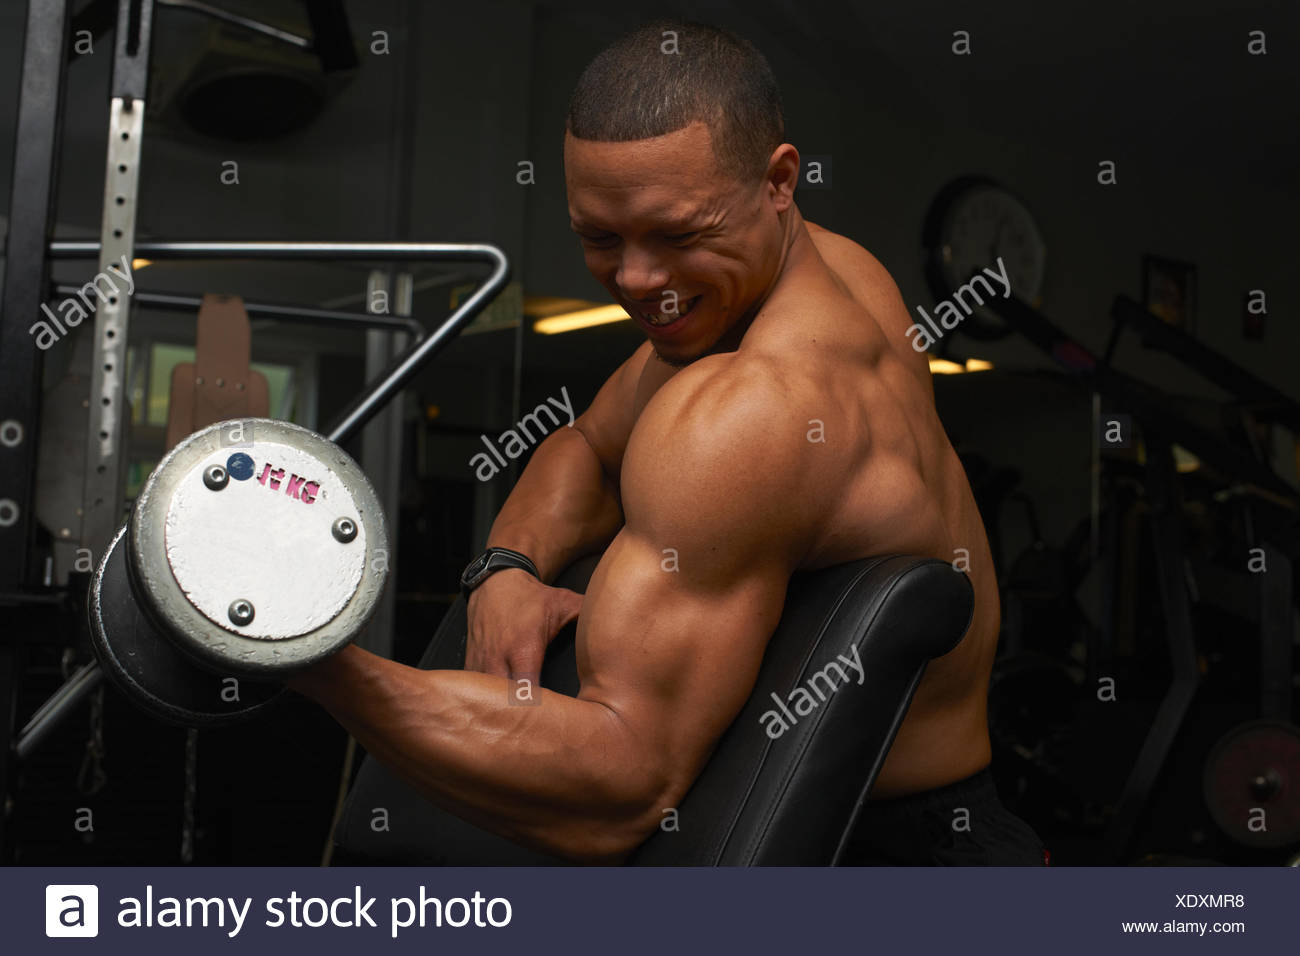 Mid adult man, lifting weights - Stock Image